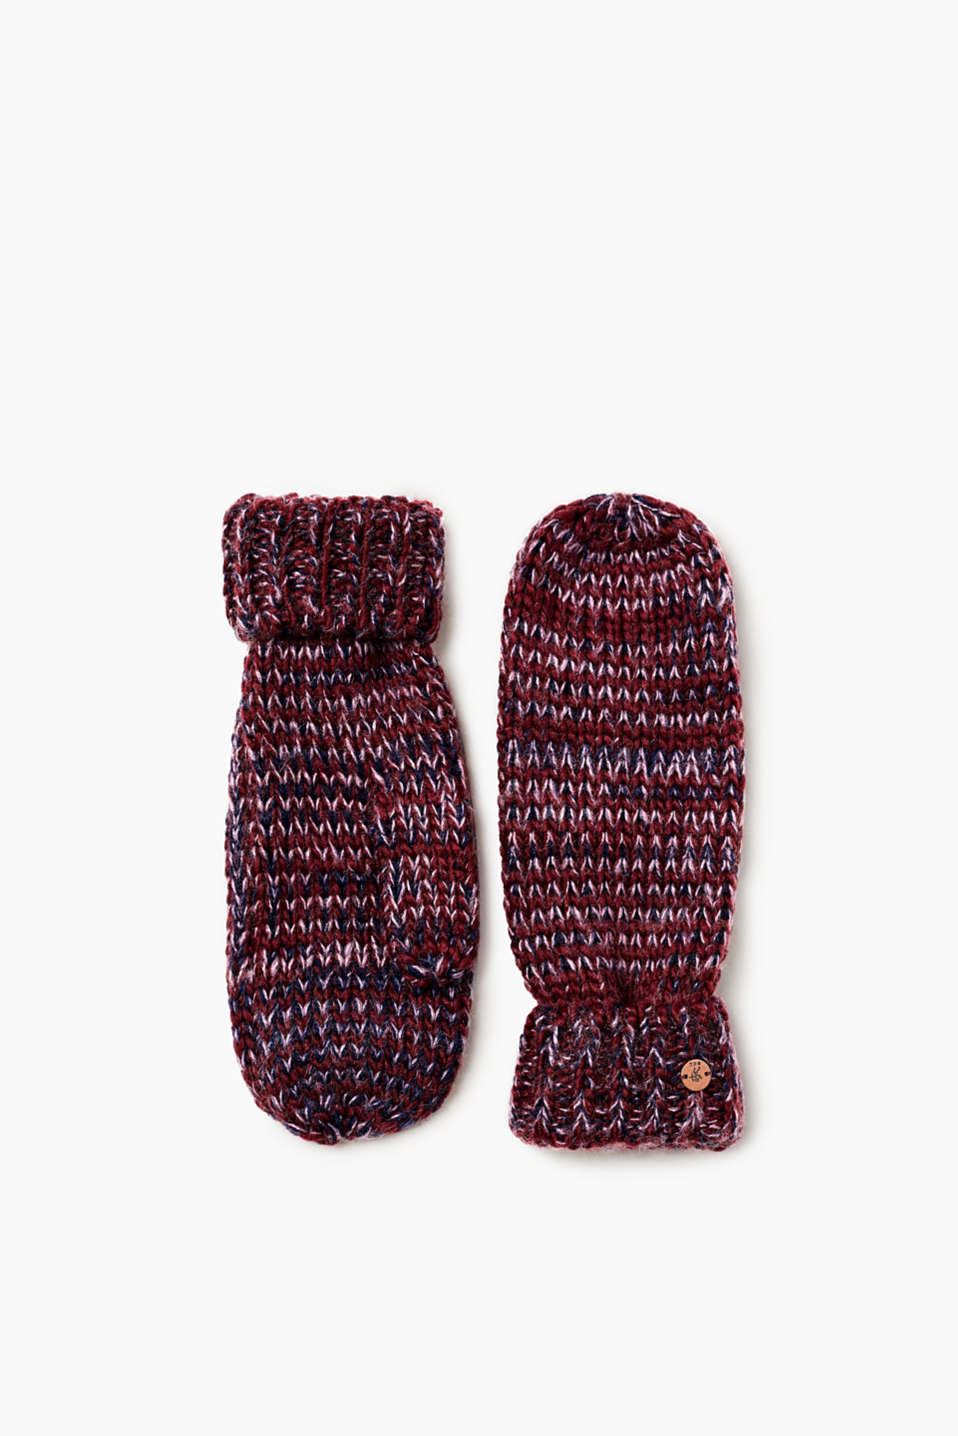 Made of soft and comfy, chunky melange yarn: sportily styled mittens.